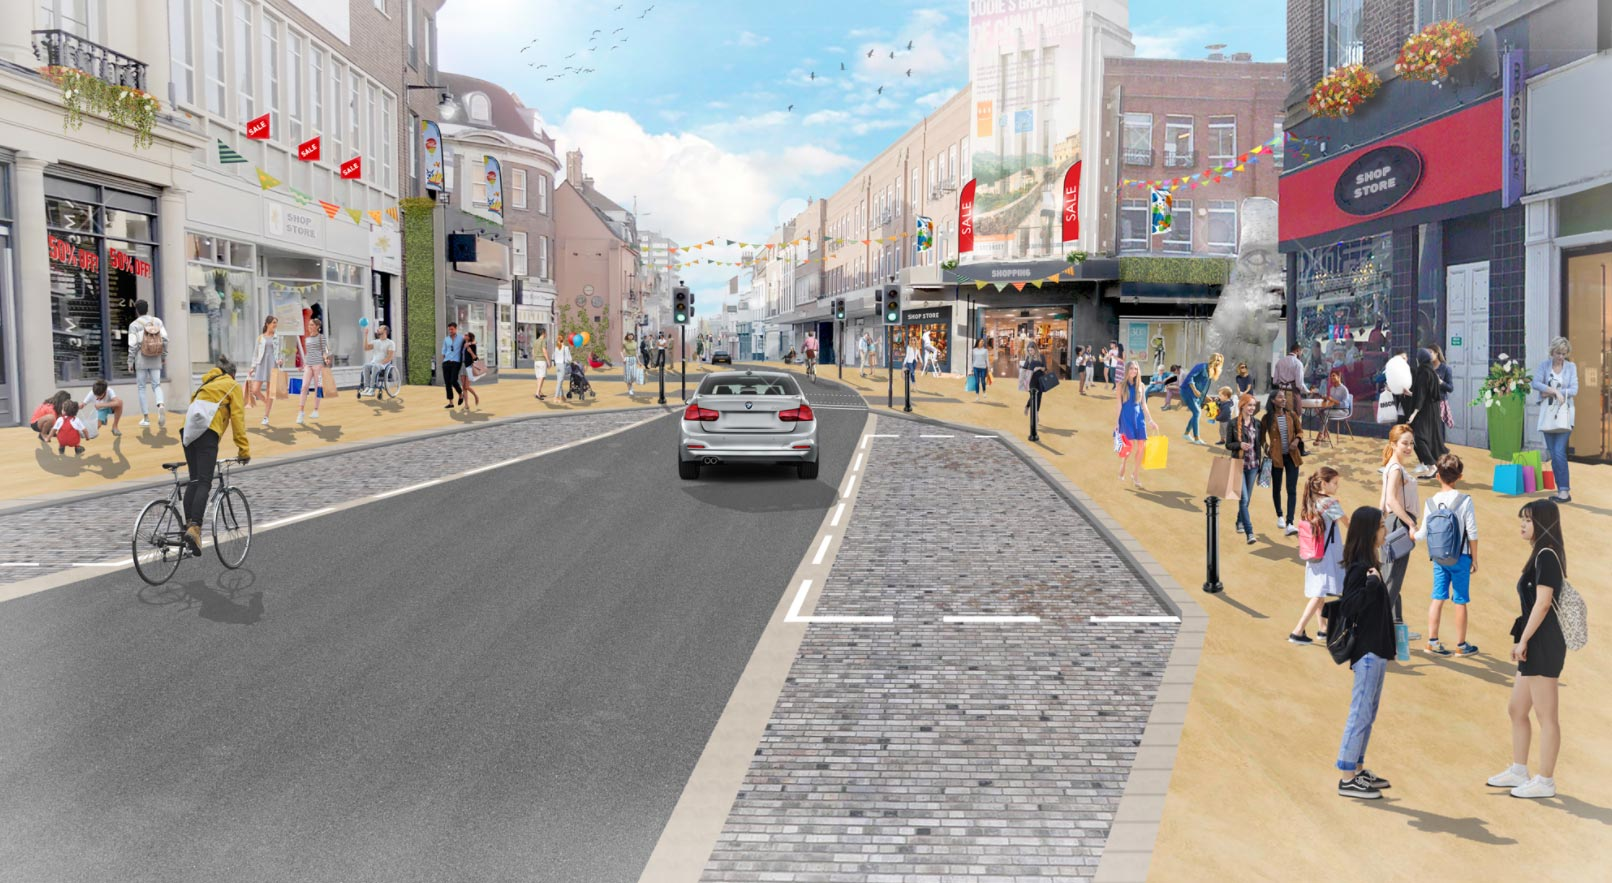 Artists impression of Bedford's revamped high street